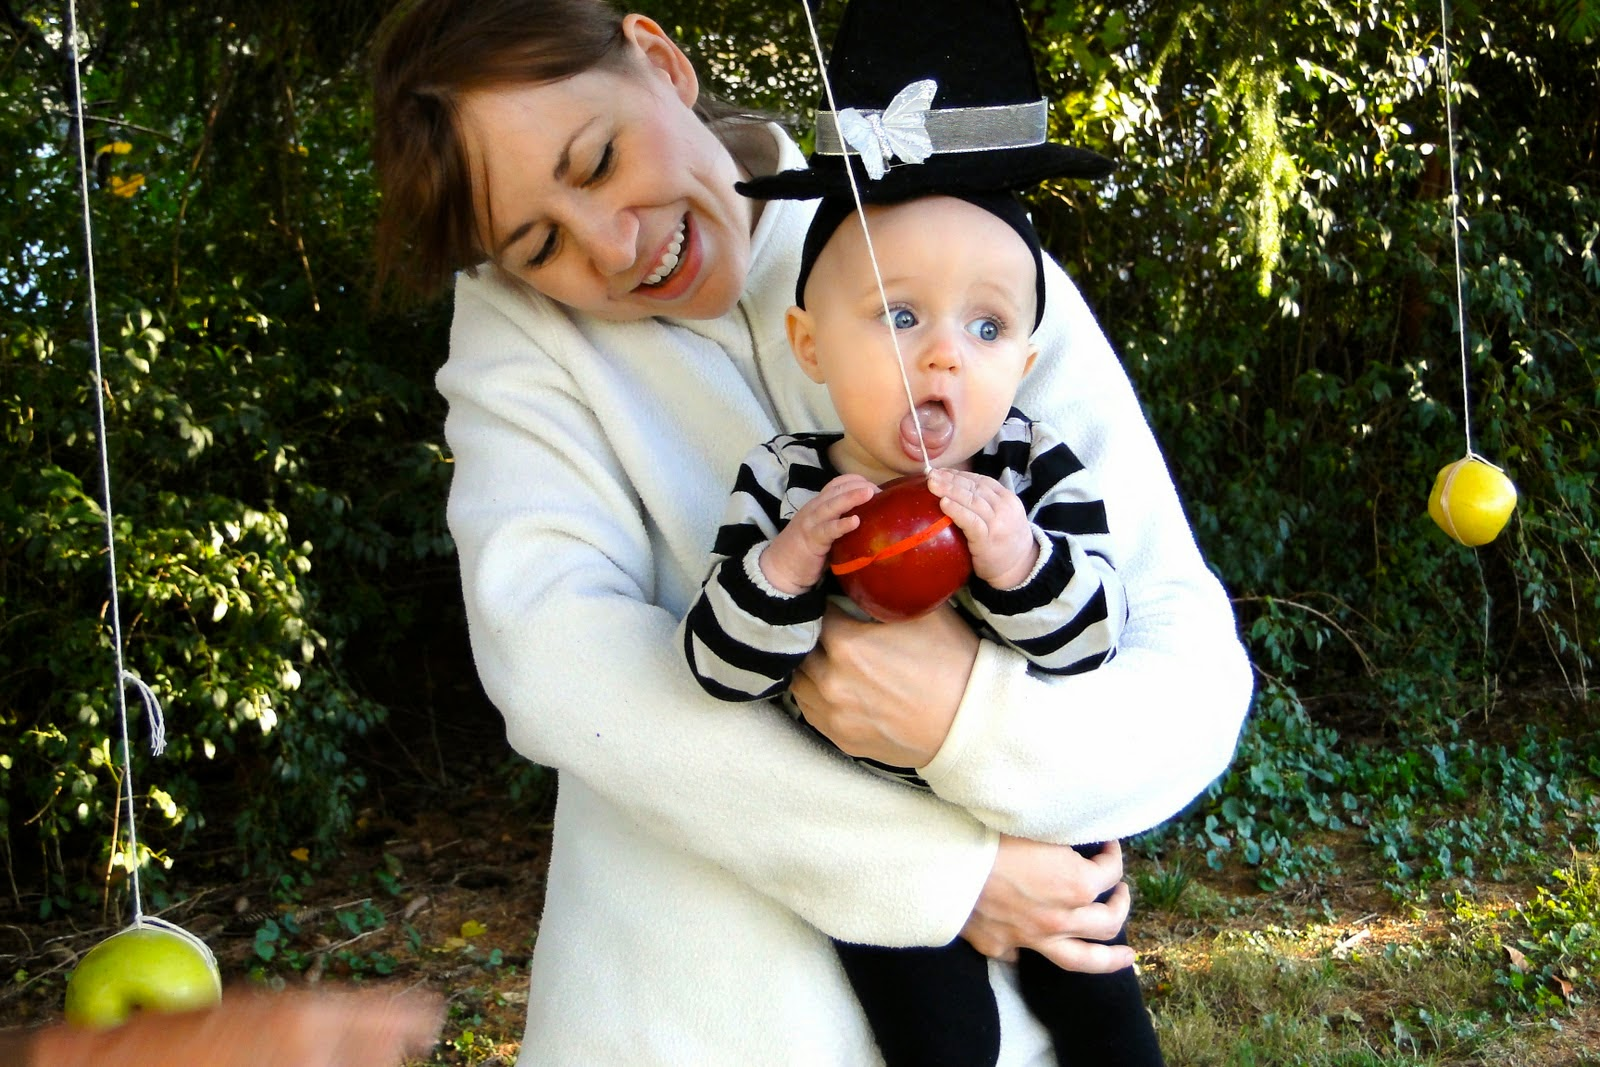 jared unzipped: five terrible halloween costumes - 2014 edition.